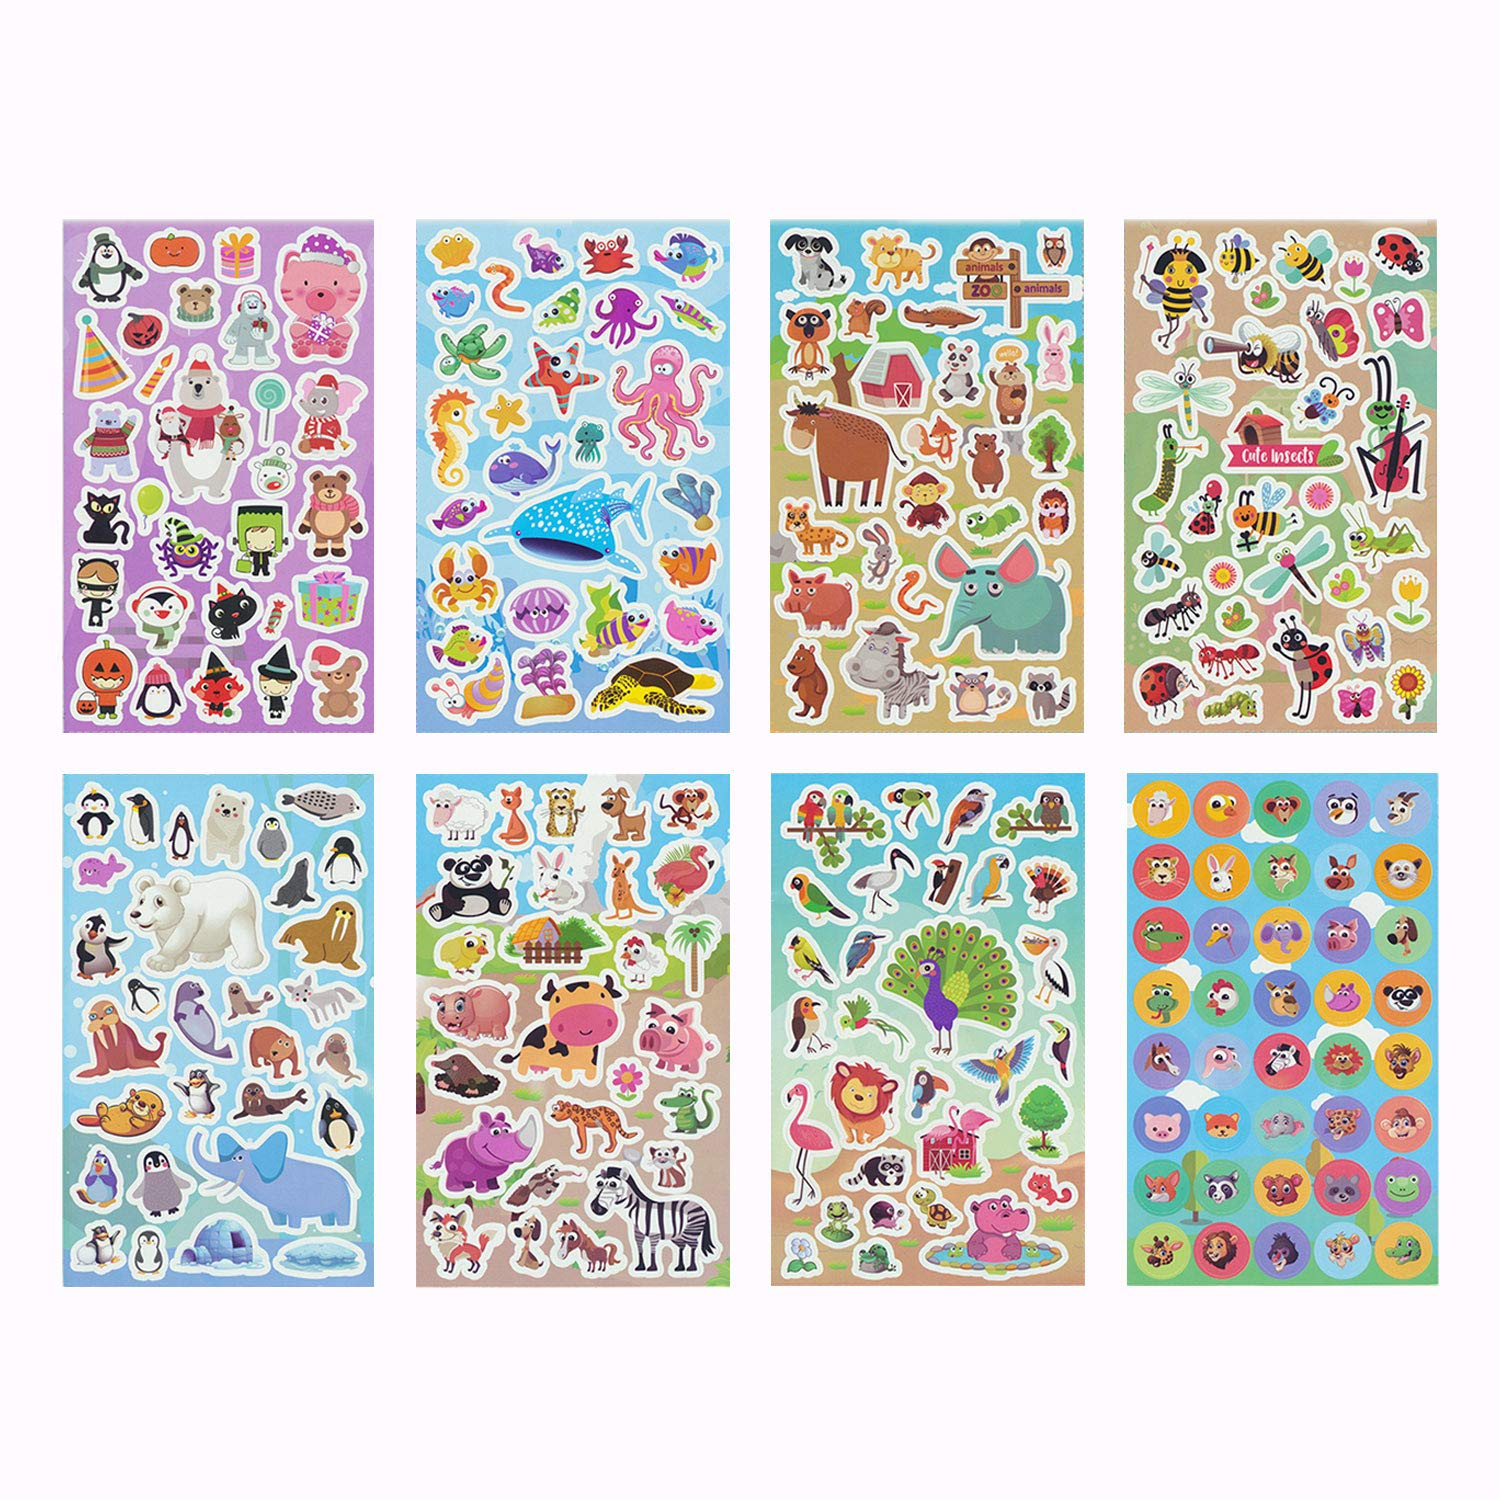 Animal Stickers,Stickers for Kids Assortment Set (1450+ Count),8 Themes Collection for Children,Teacher, Parent, Grandparent, Kids, Craft, School, Planners & Scrapbooking,Present Idea for Children